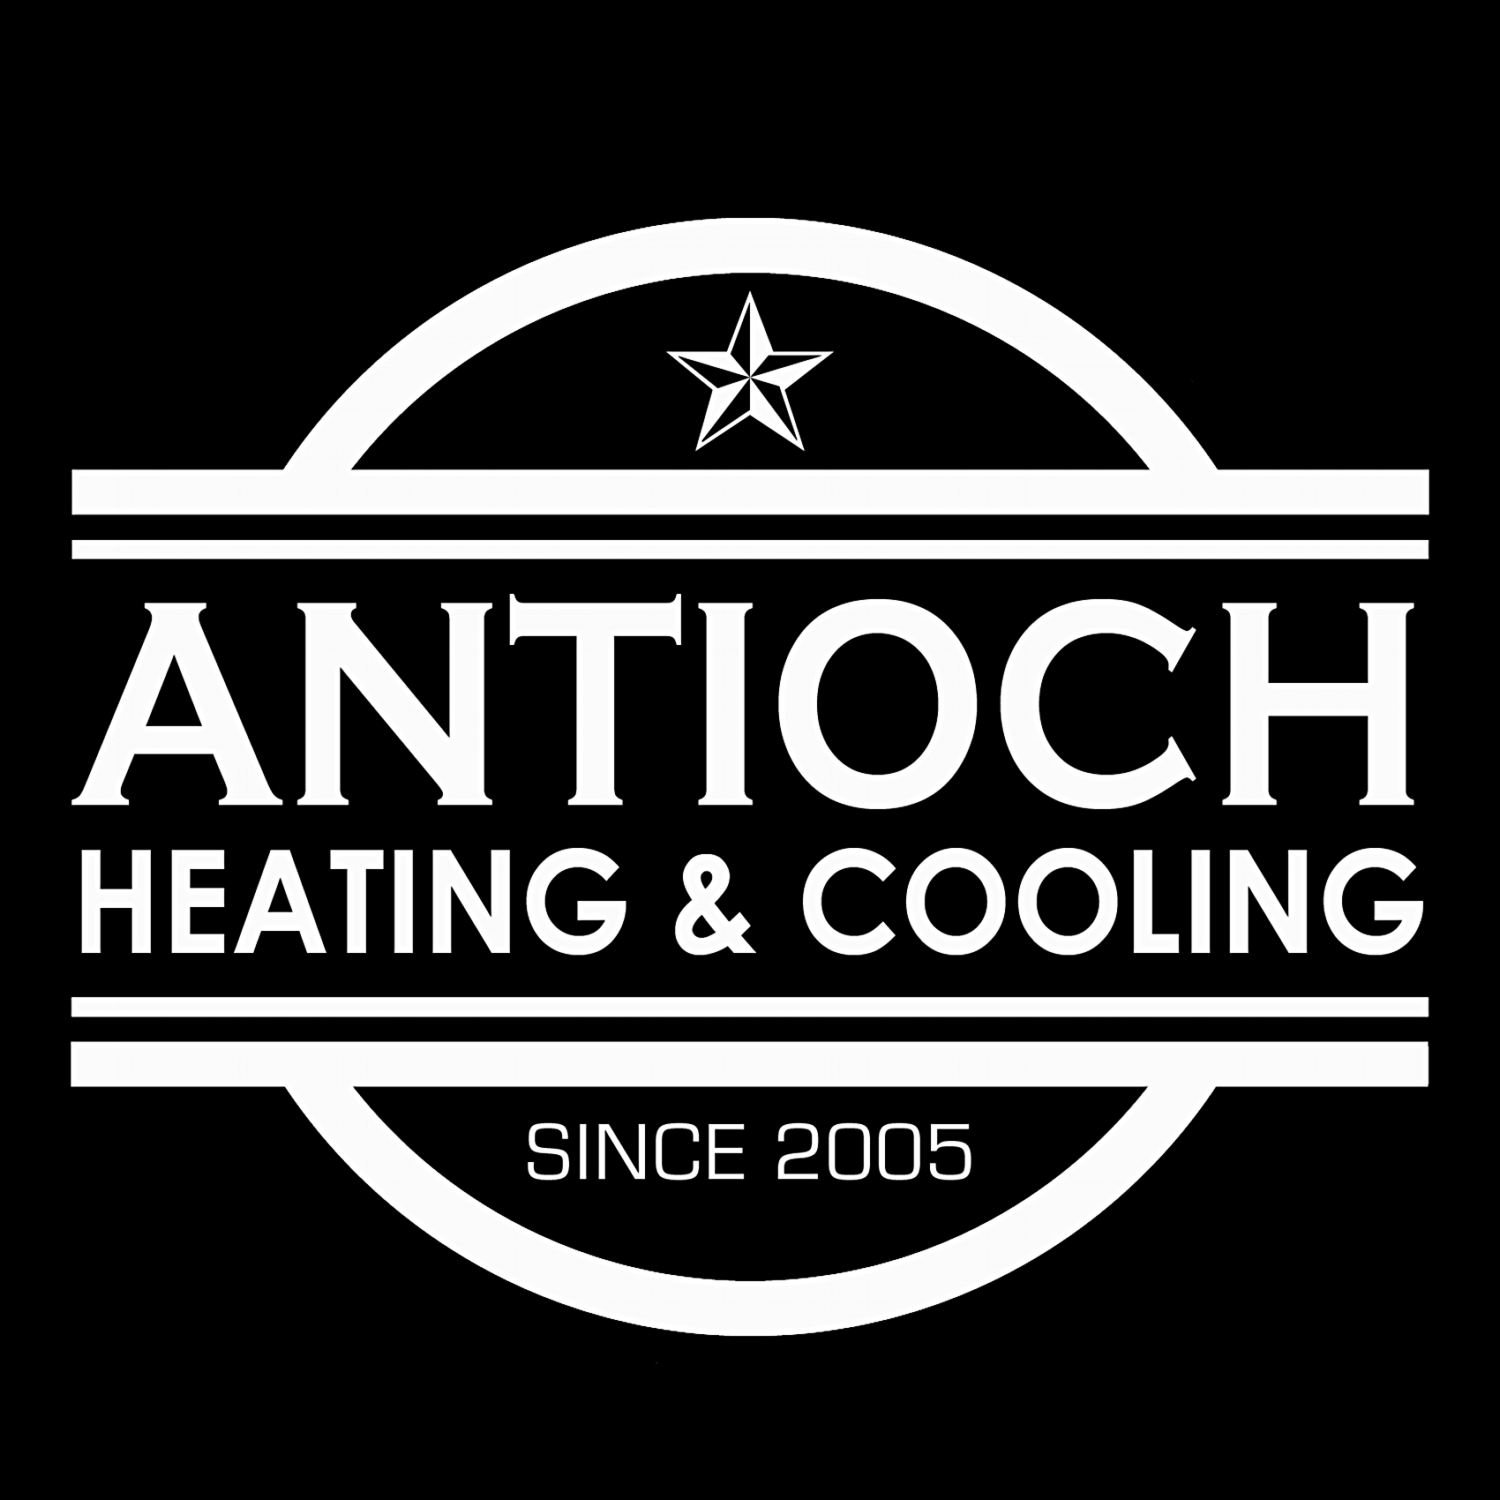 Antioch Heating and Cooling